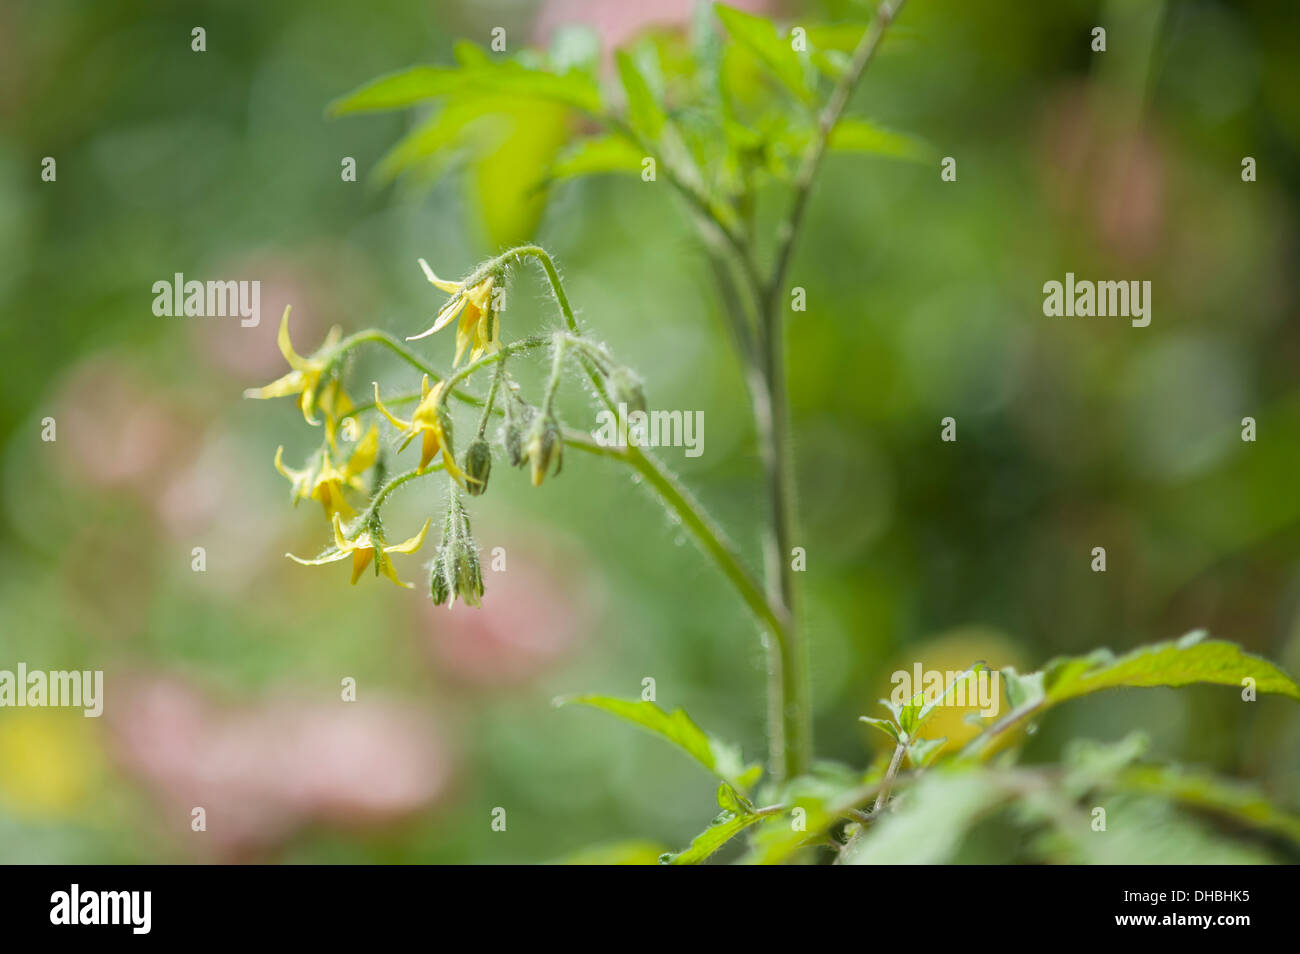 Flowers On A Tomato Plant Stock Photos Flowers On A Tomato Plant